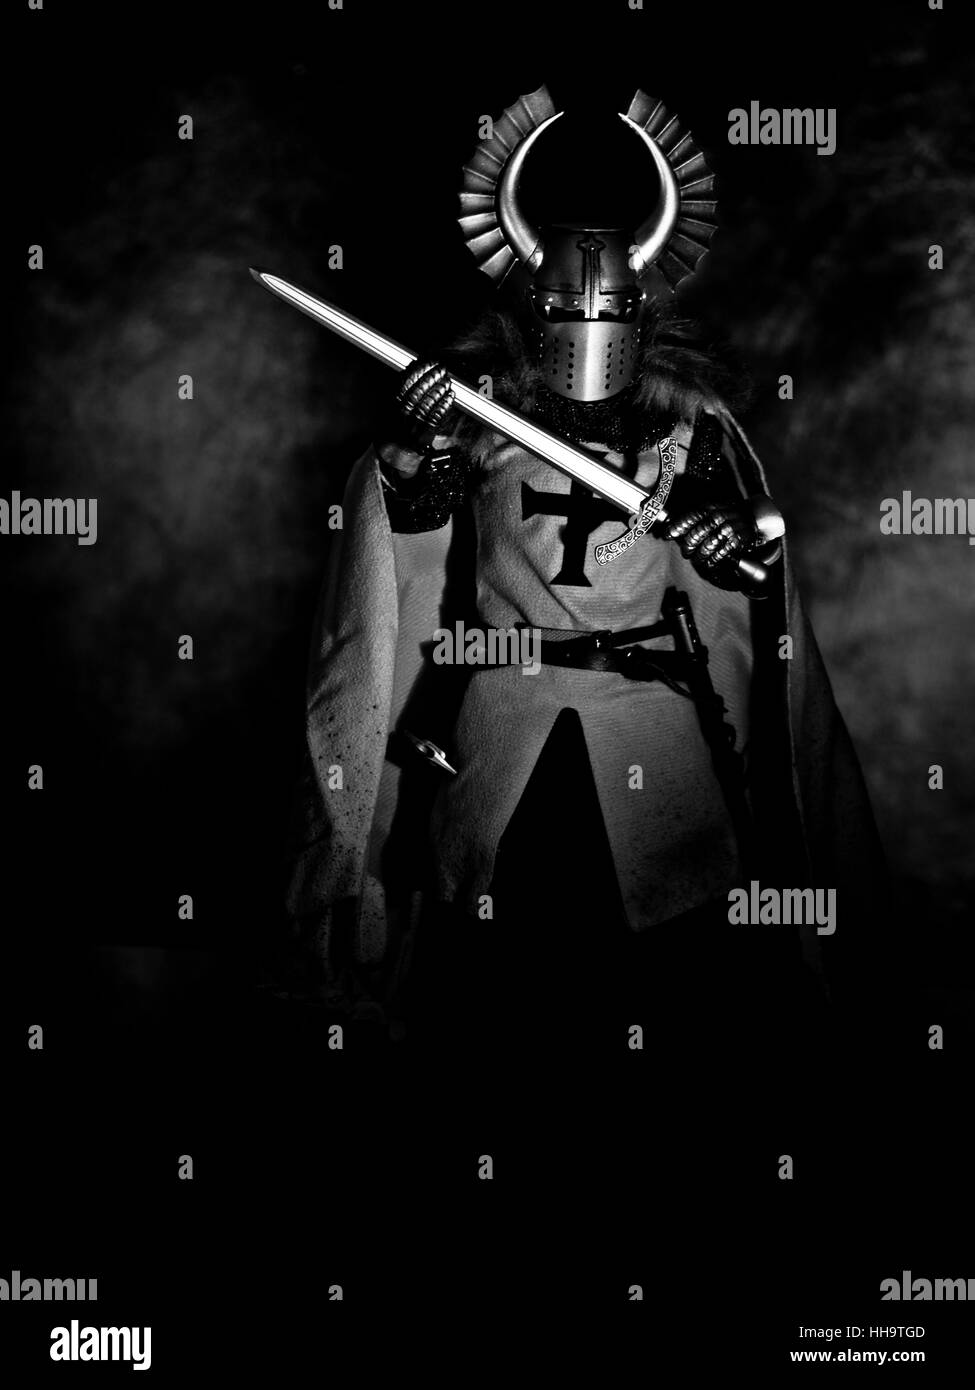 Teutonic Knight in armor, plate and with a sword - Stock Image